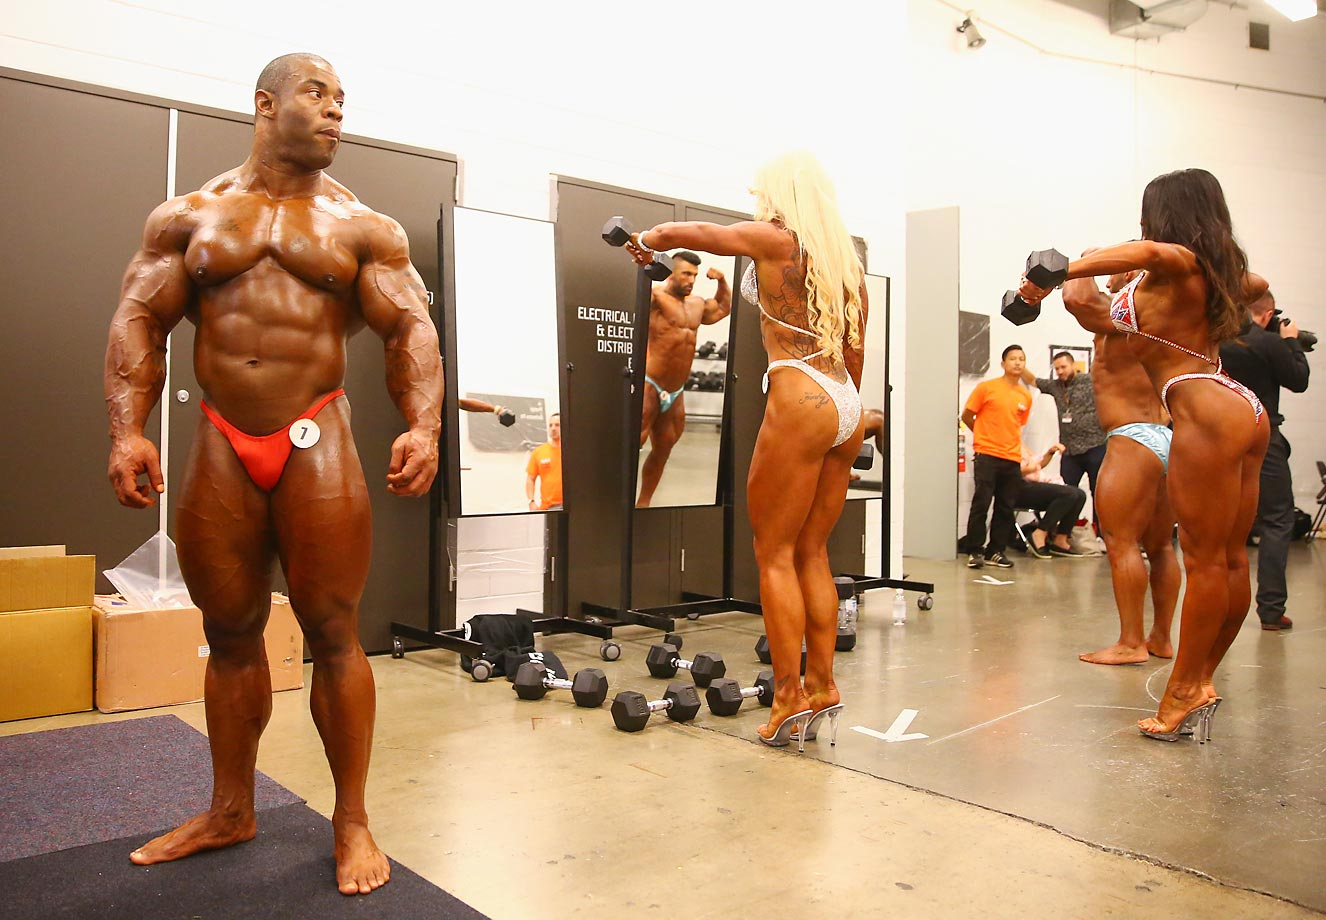 Competitors prepare backstage for the Arnold Classic.